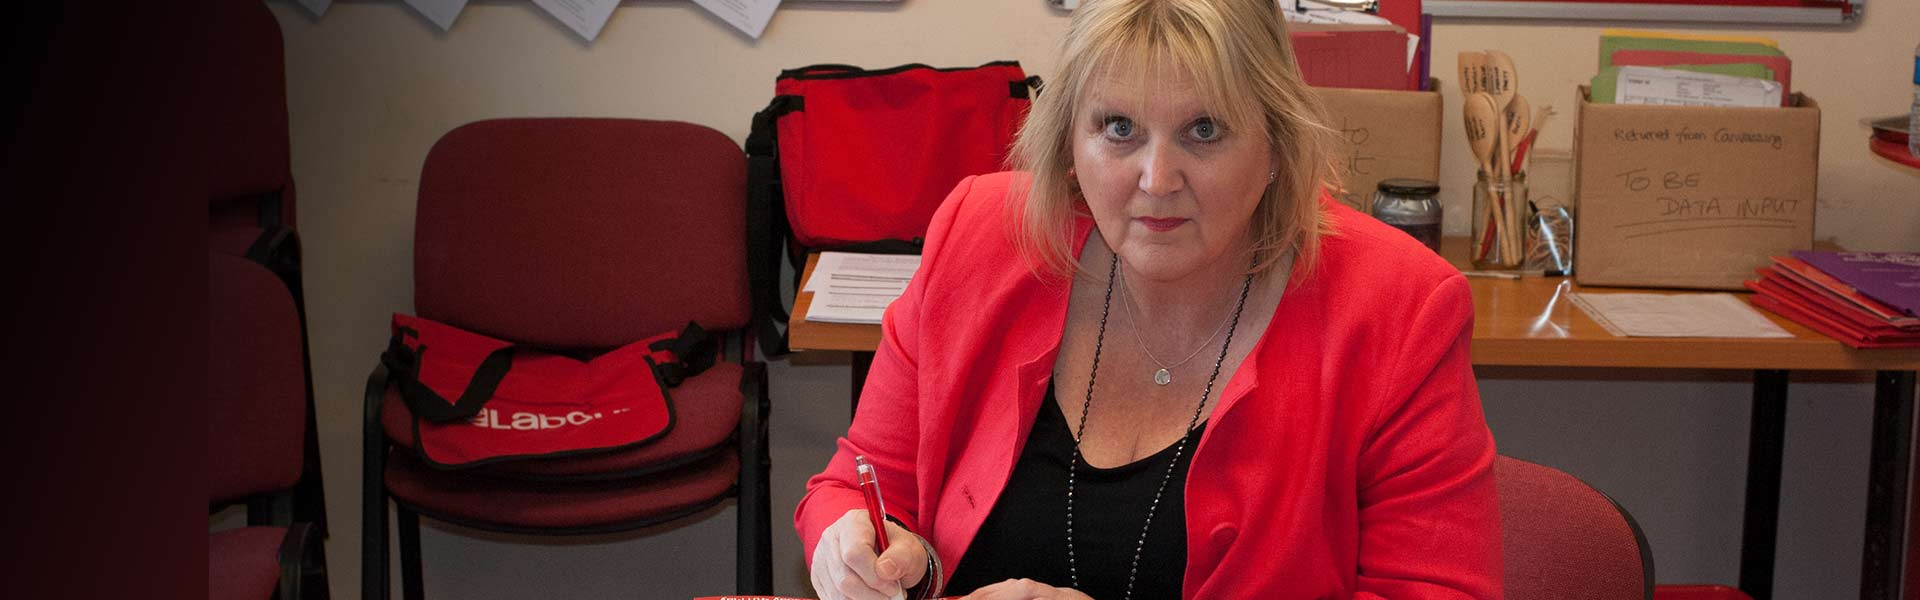 Labour's Karen Constantine at work in Newington, Ramsgate, Thanet, Kent.